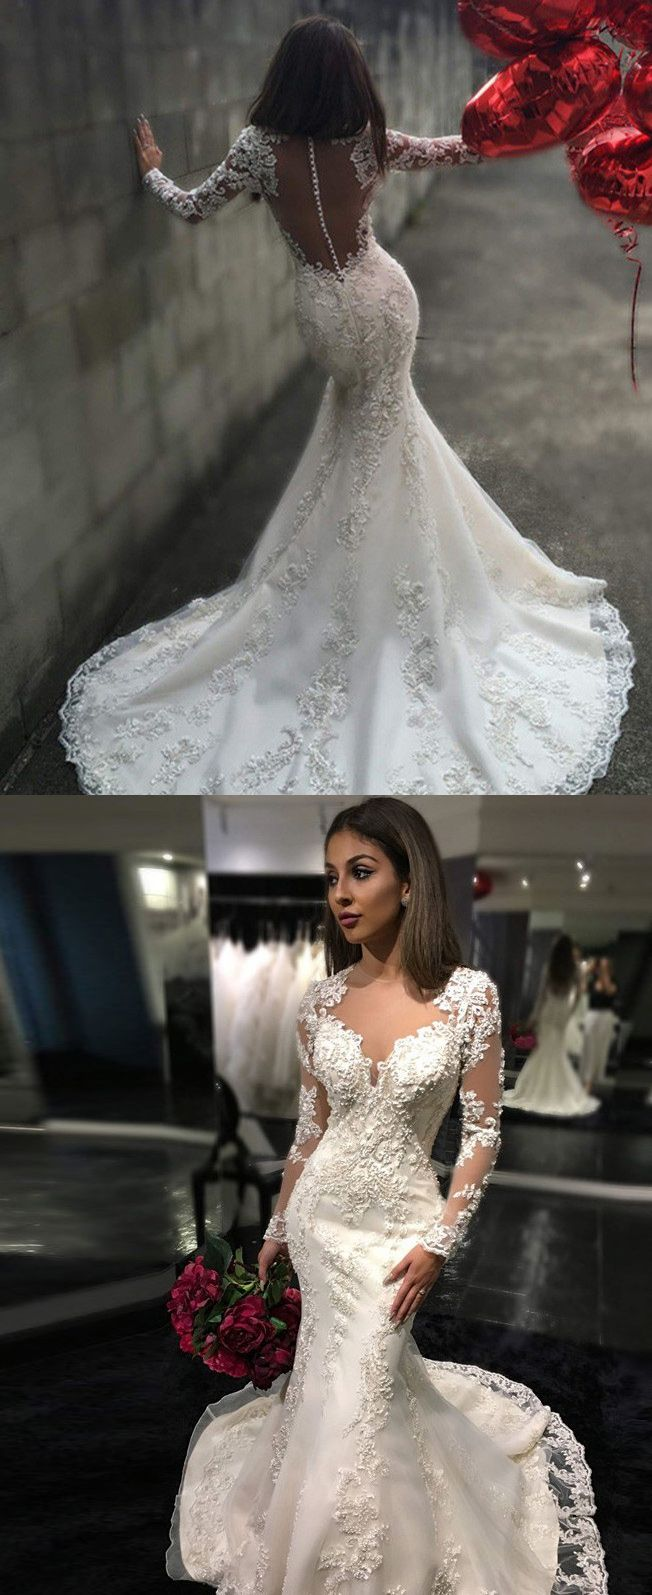 long mermaid wedding dresses with appliques, wedding dresses with long sleeves, mermaid wedding gown, wedding dresses long, dresses for wedding gown, new arrival wedding dresses, high quality wedding dresses, 2017 wedding dresses for women, women's wedding dresses